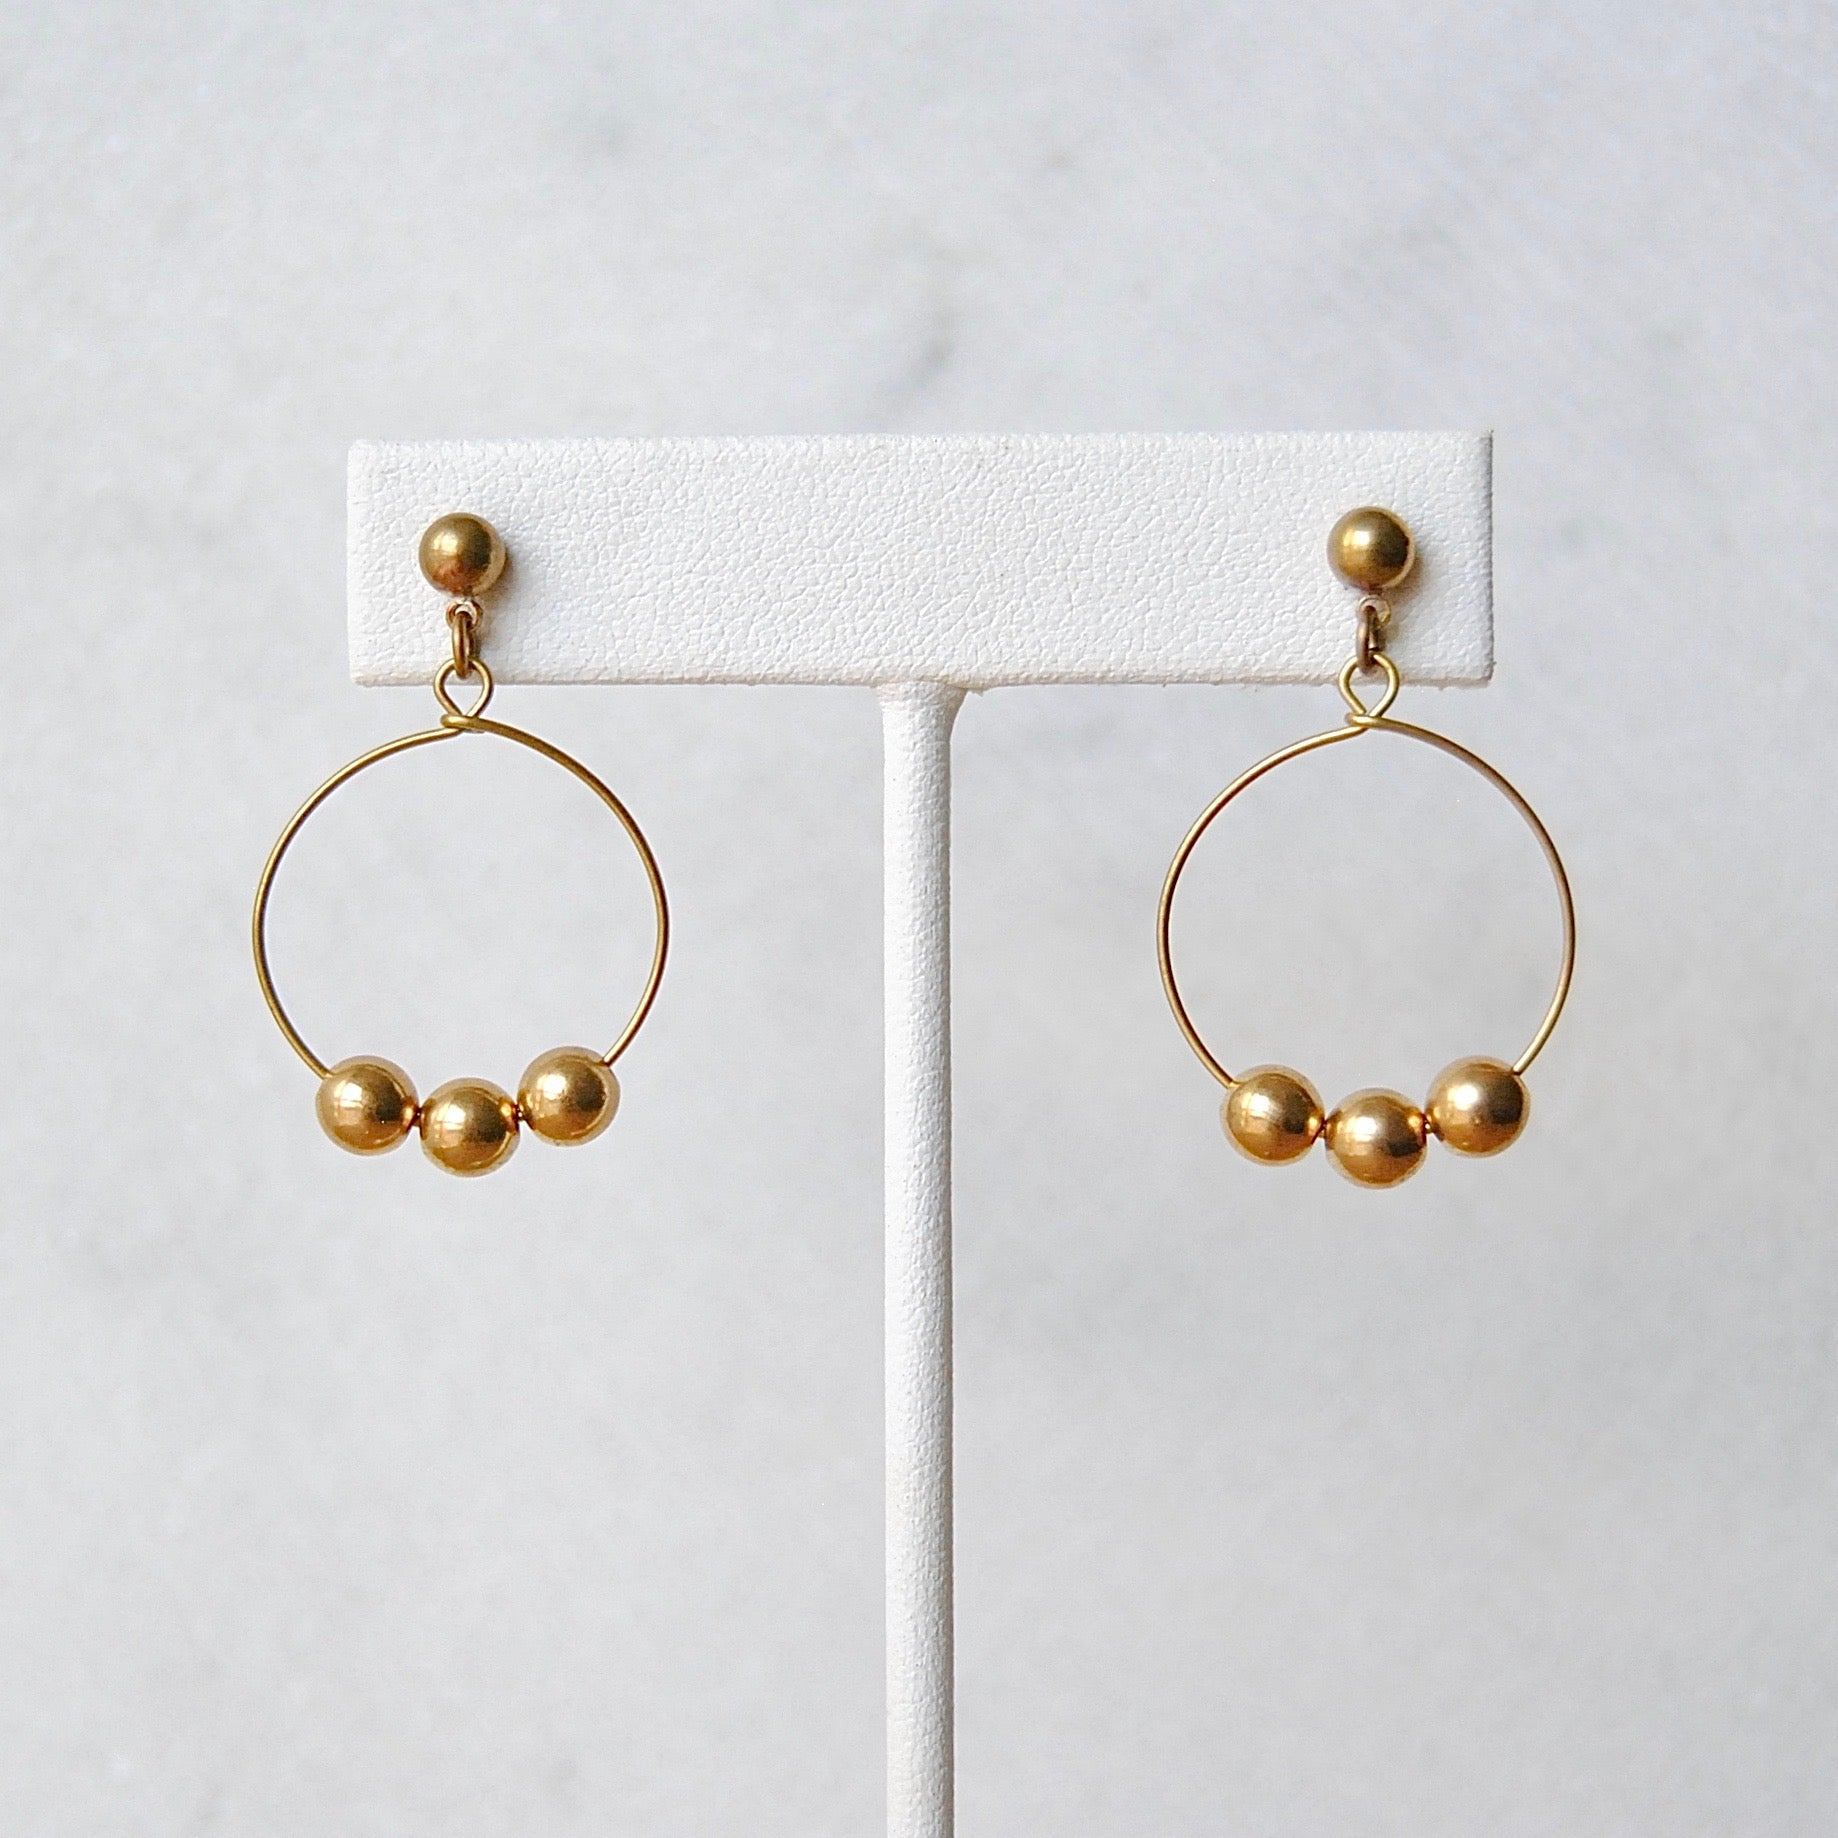 MINIMAL HOOP EARRINGS